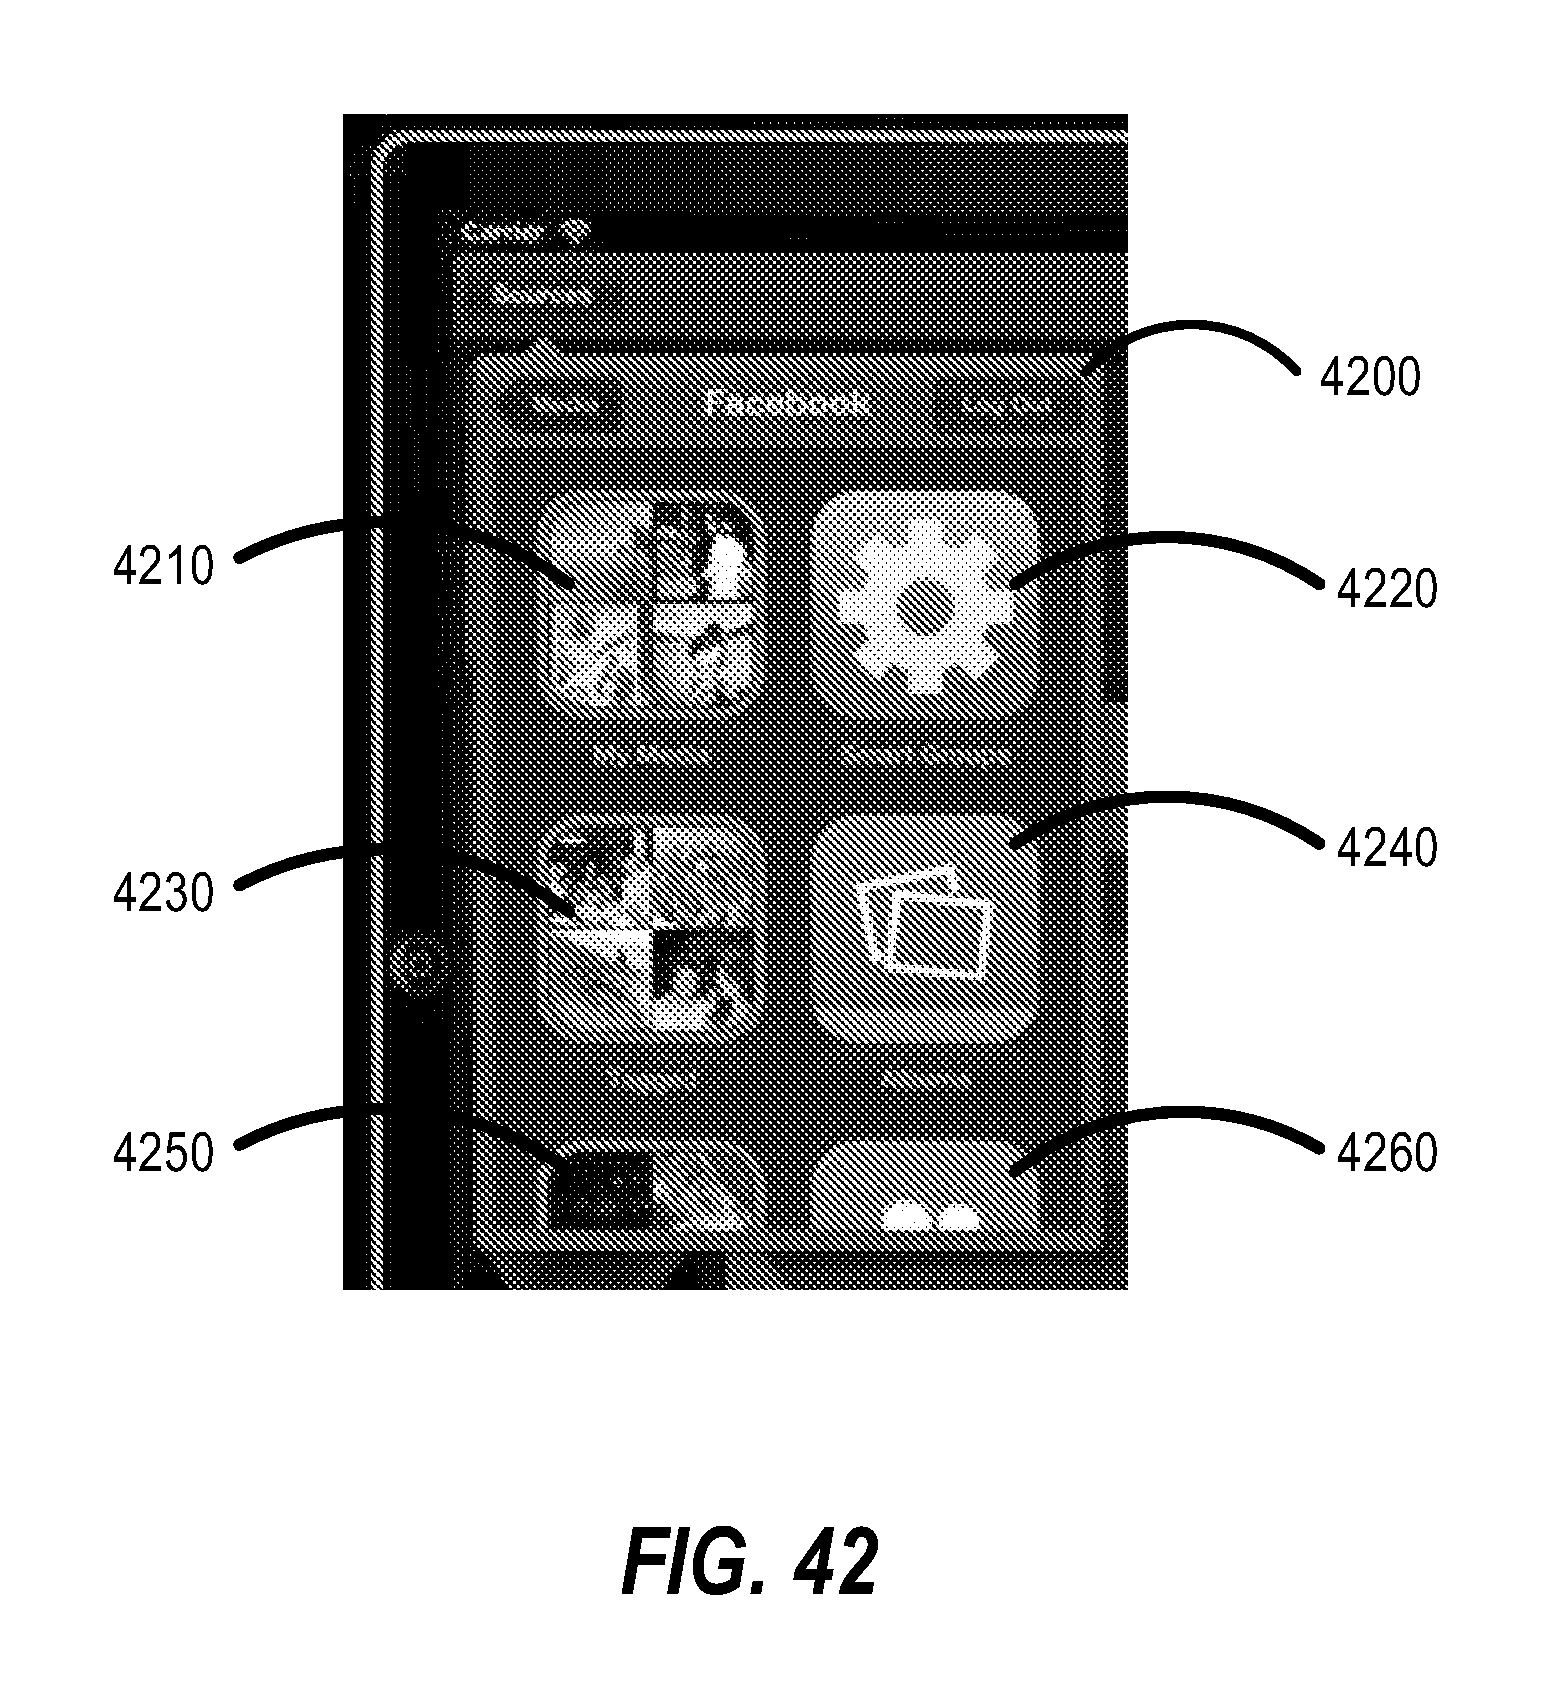 US20140282099A1 - Retrieval, identification, and